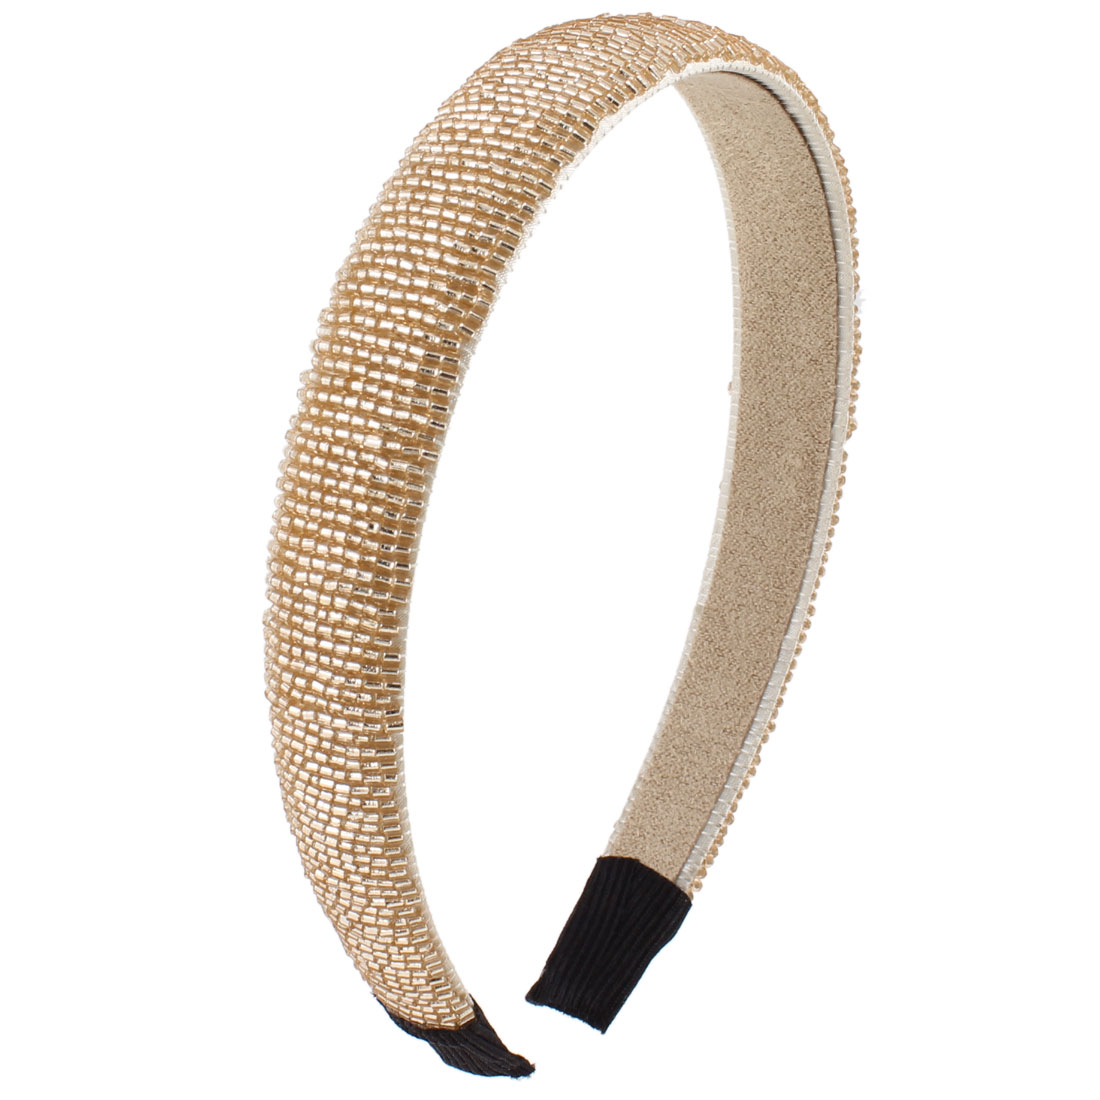 Lady Flannel Lining Gold Tone Plastic Mini Beads Narrow Hair Hoop Headband